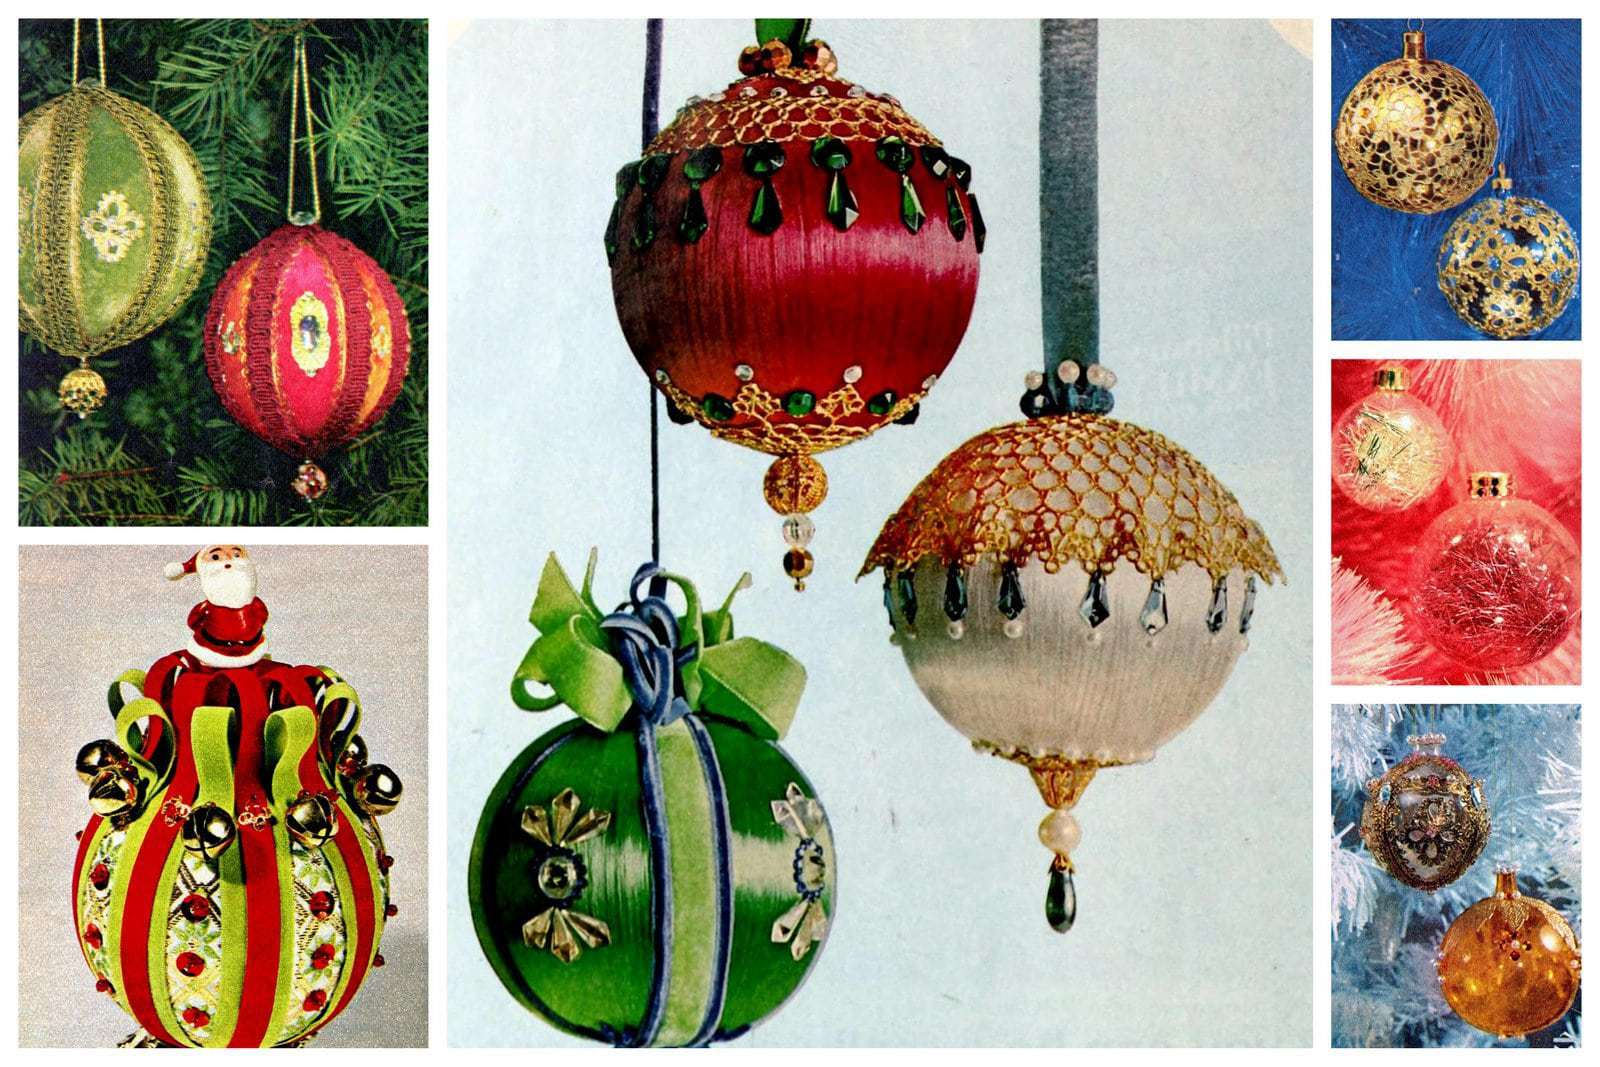 20 Retro Diy Christmas Ornament Craft Ideas From The 60s That Are